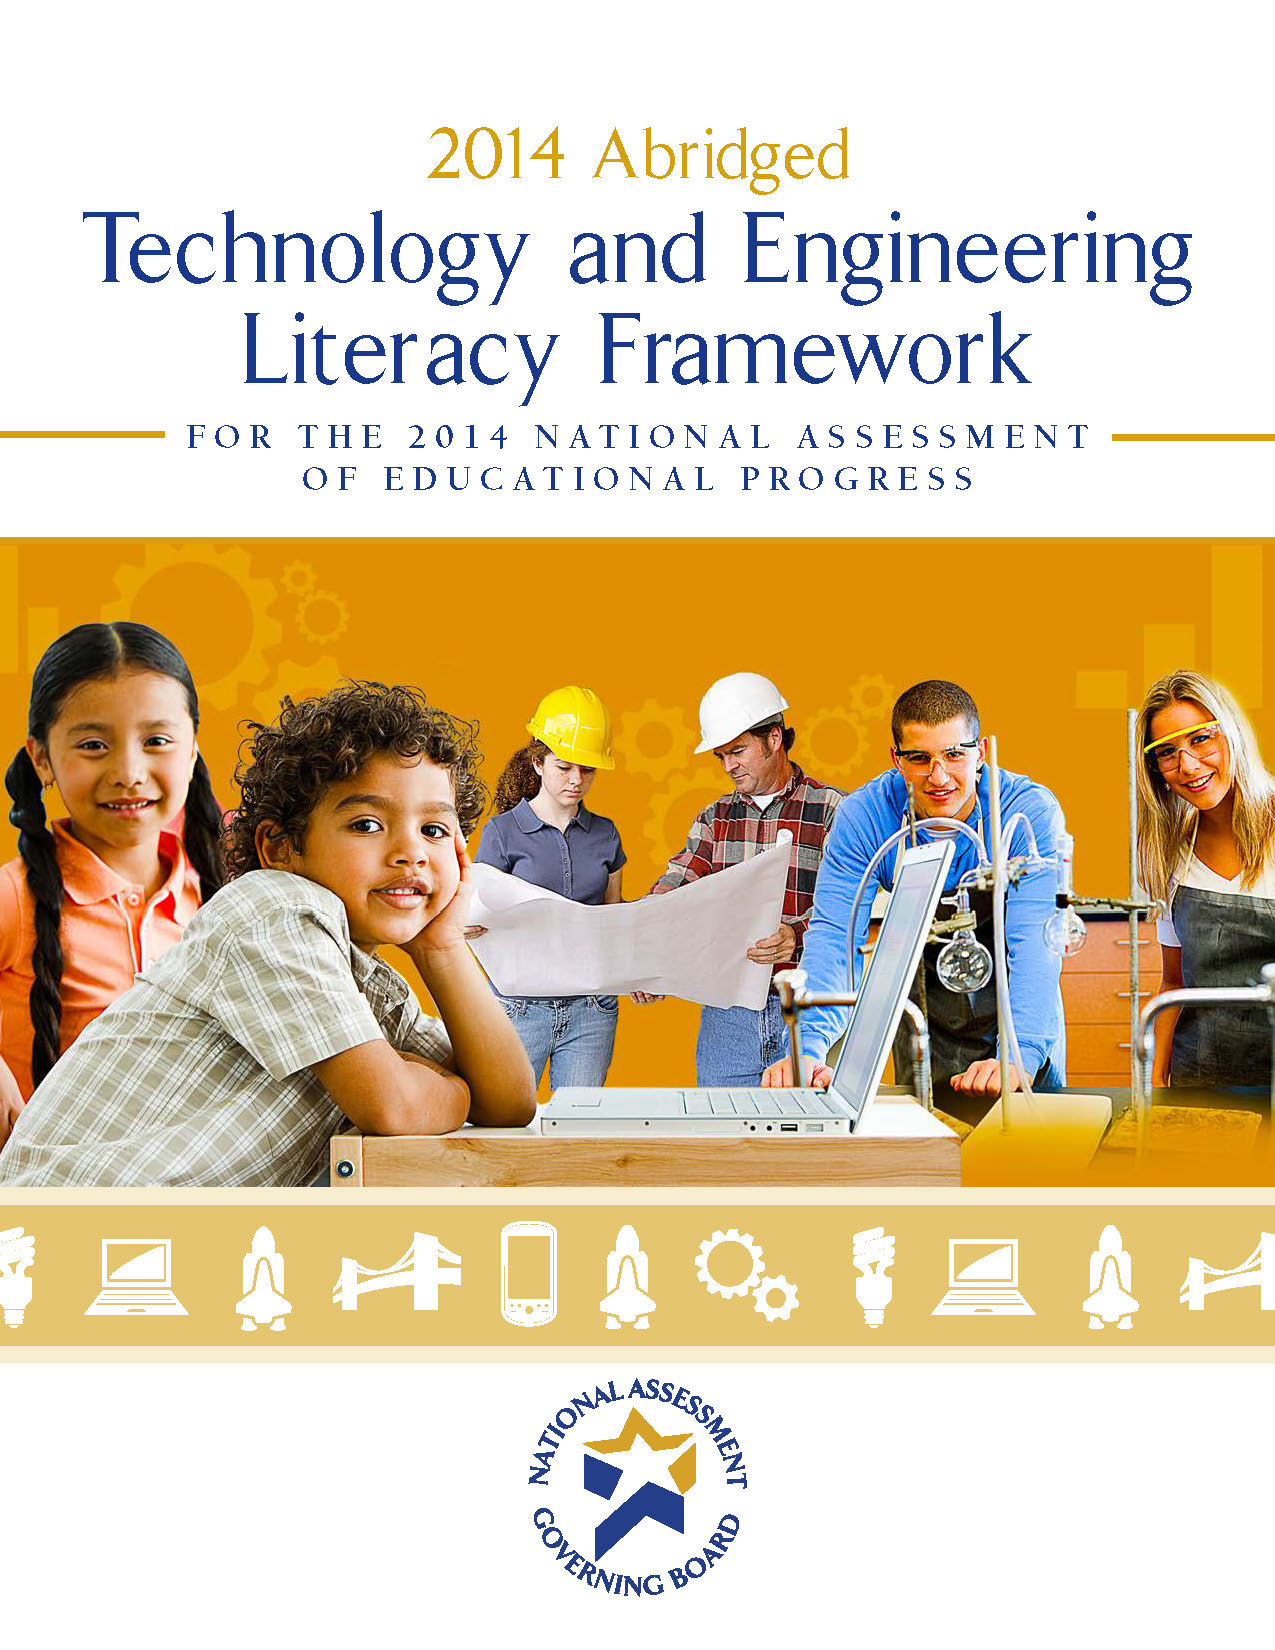 Technology and Engineering Literacy Framework for the 2014 National Assessment of Educational Progress (Abridged)